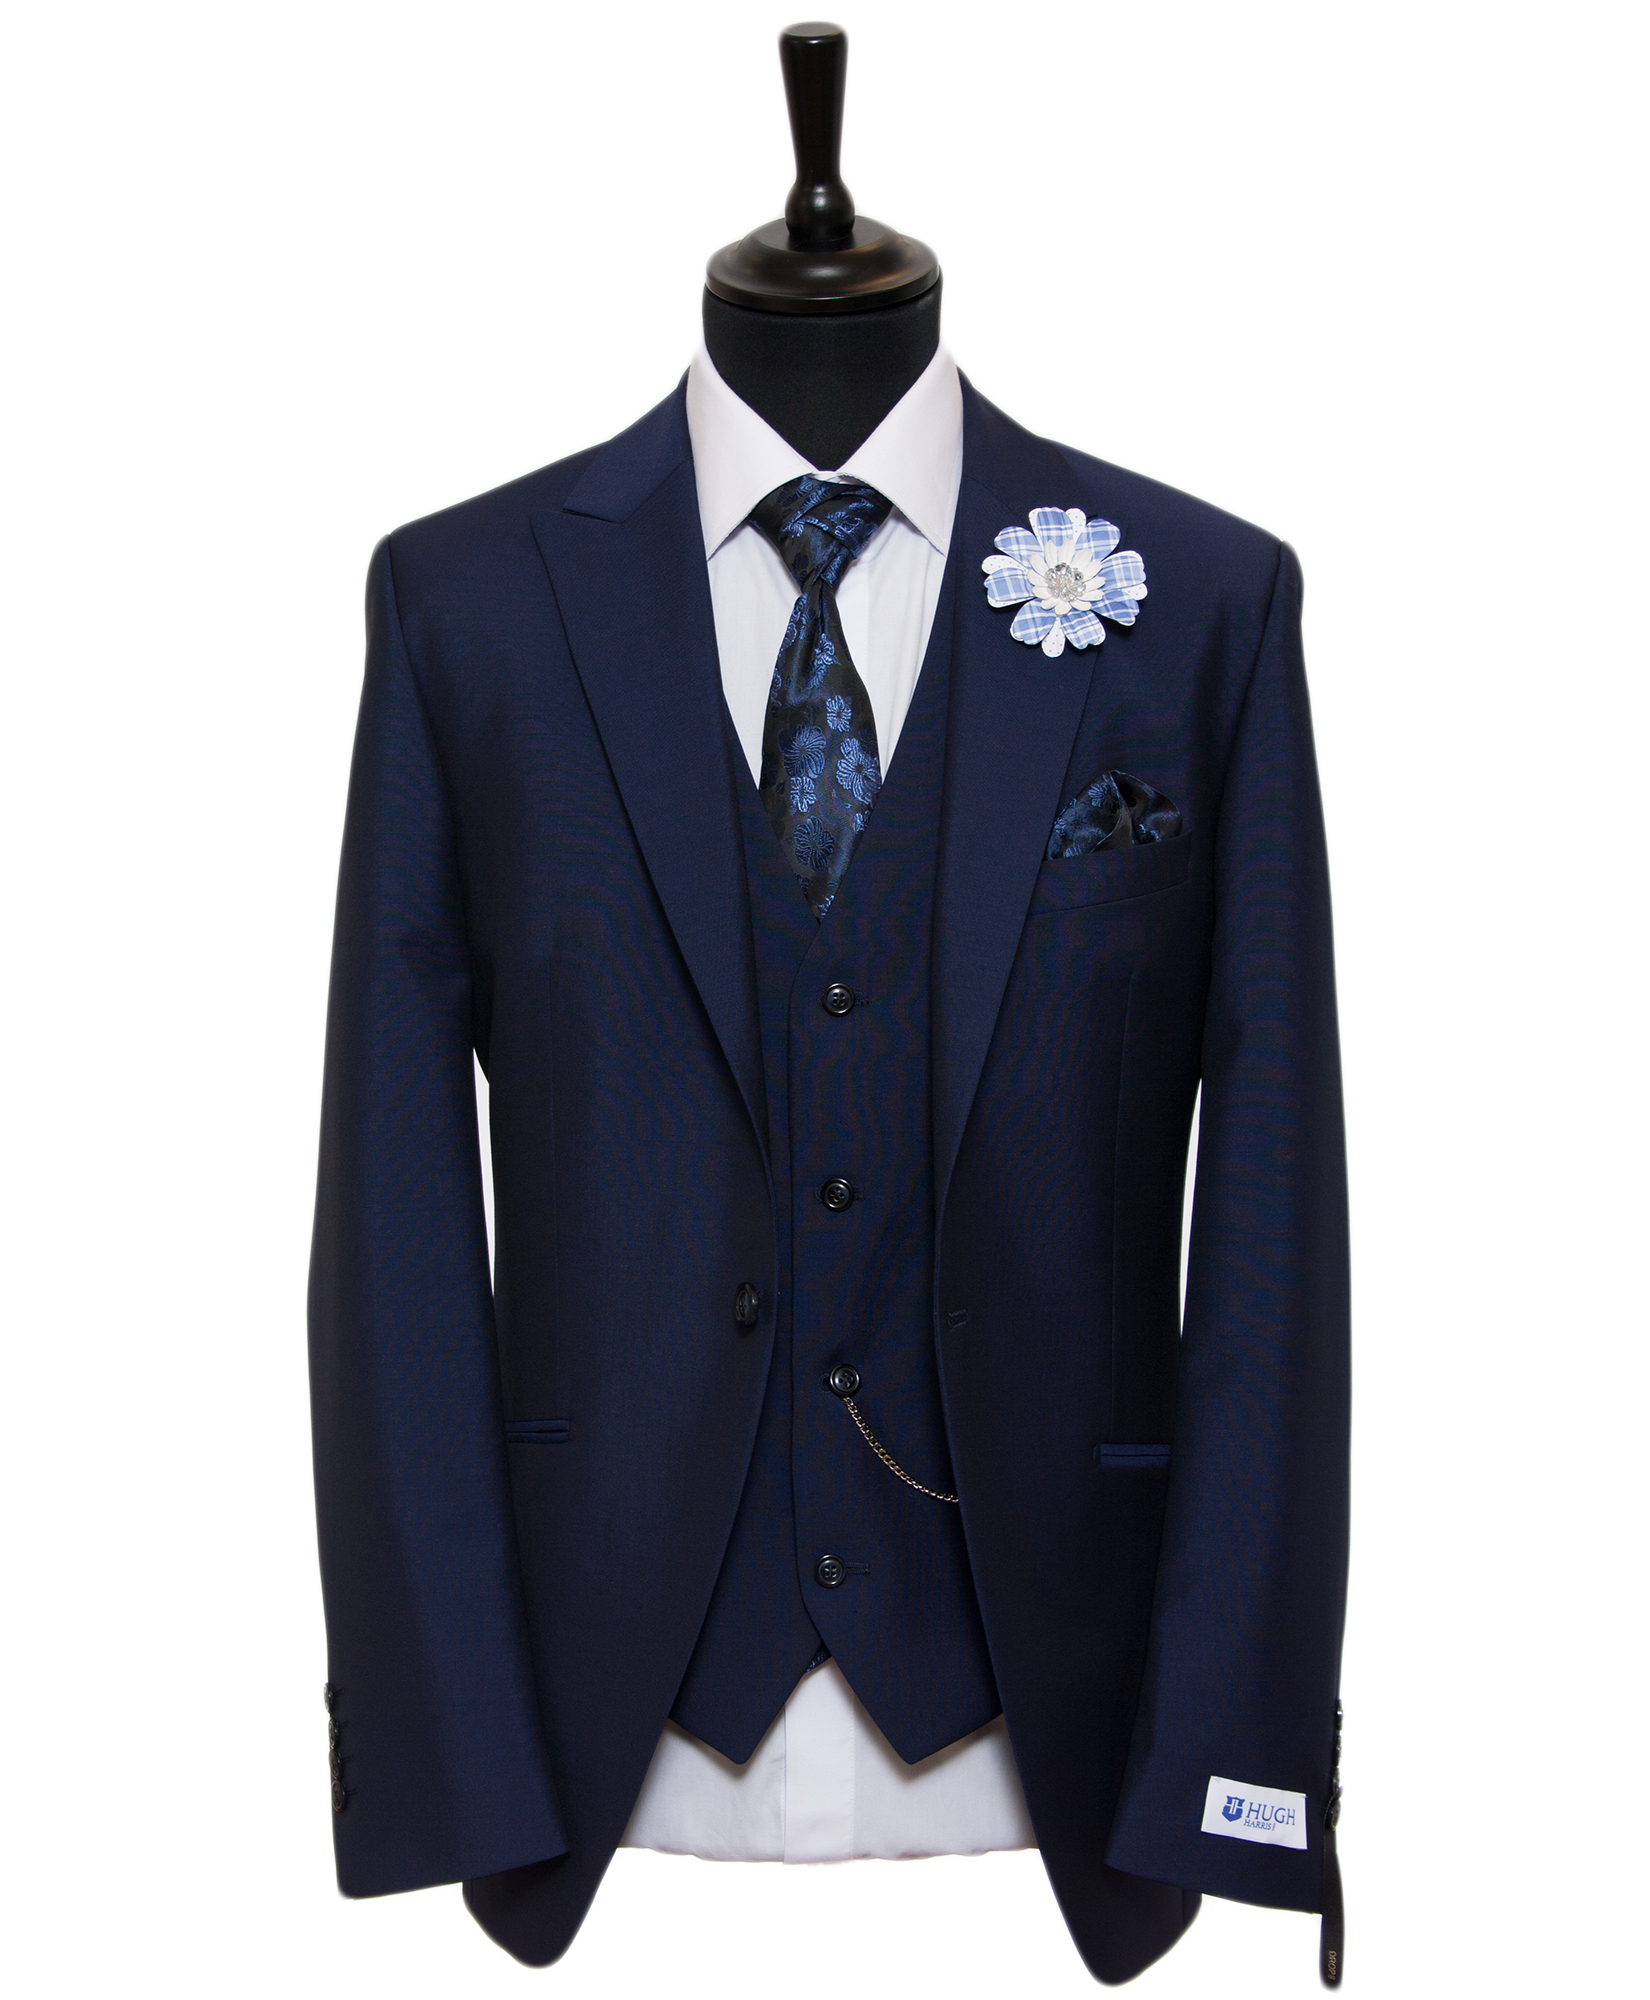 01_french navy blue carlton lounge suit.jpg: 6348 bytes